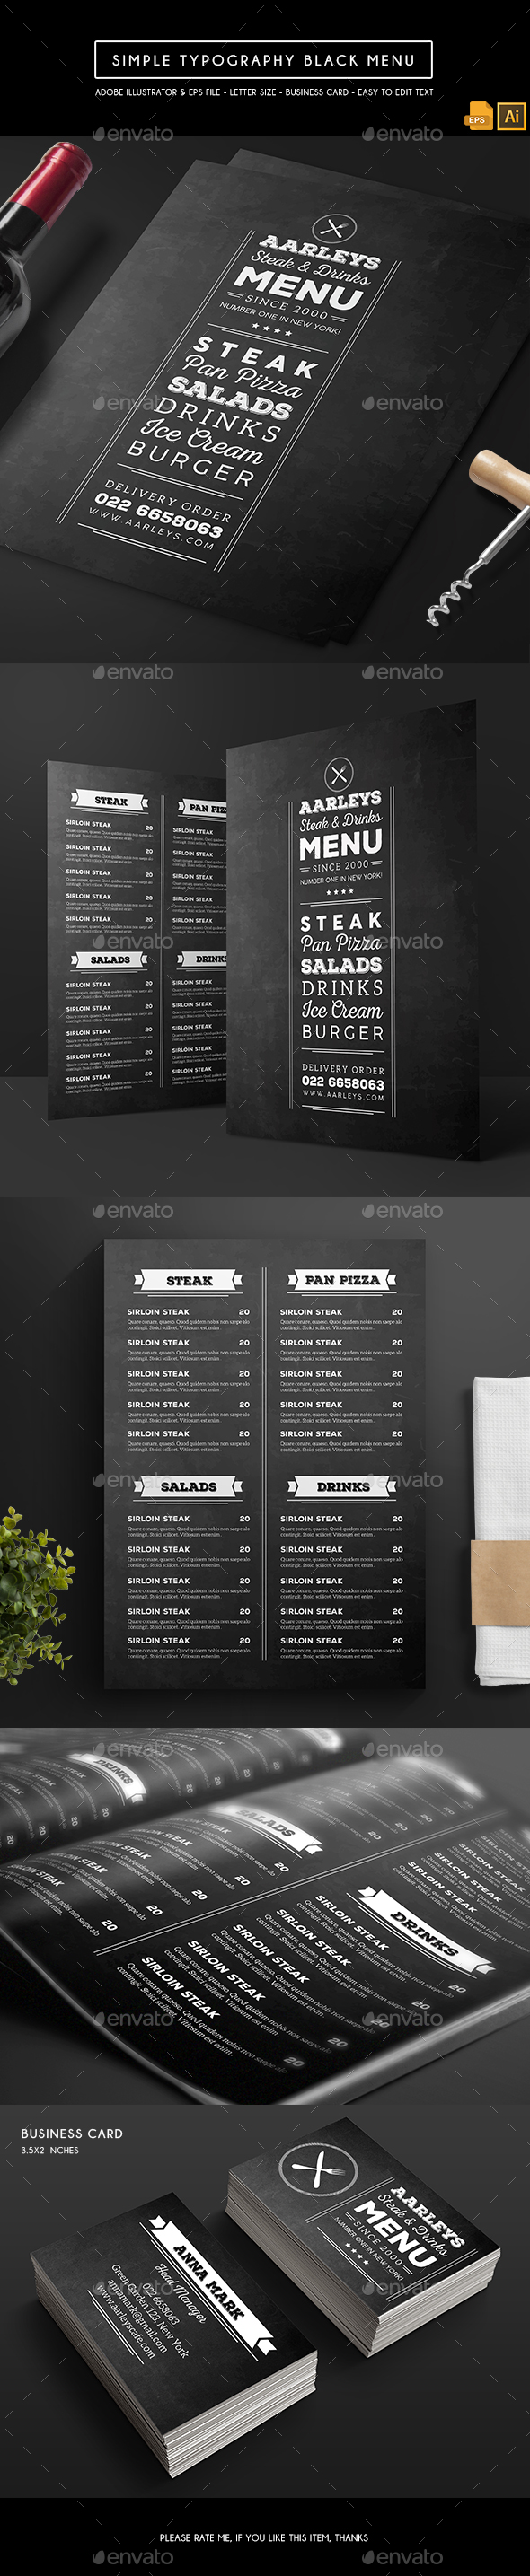 GraphicRiver Simple Typography Black Menu 21161752